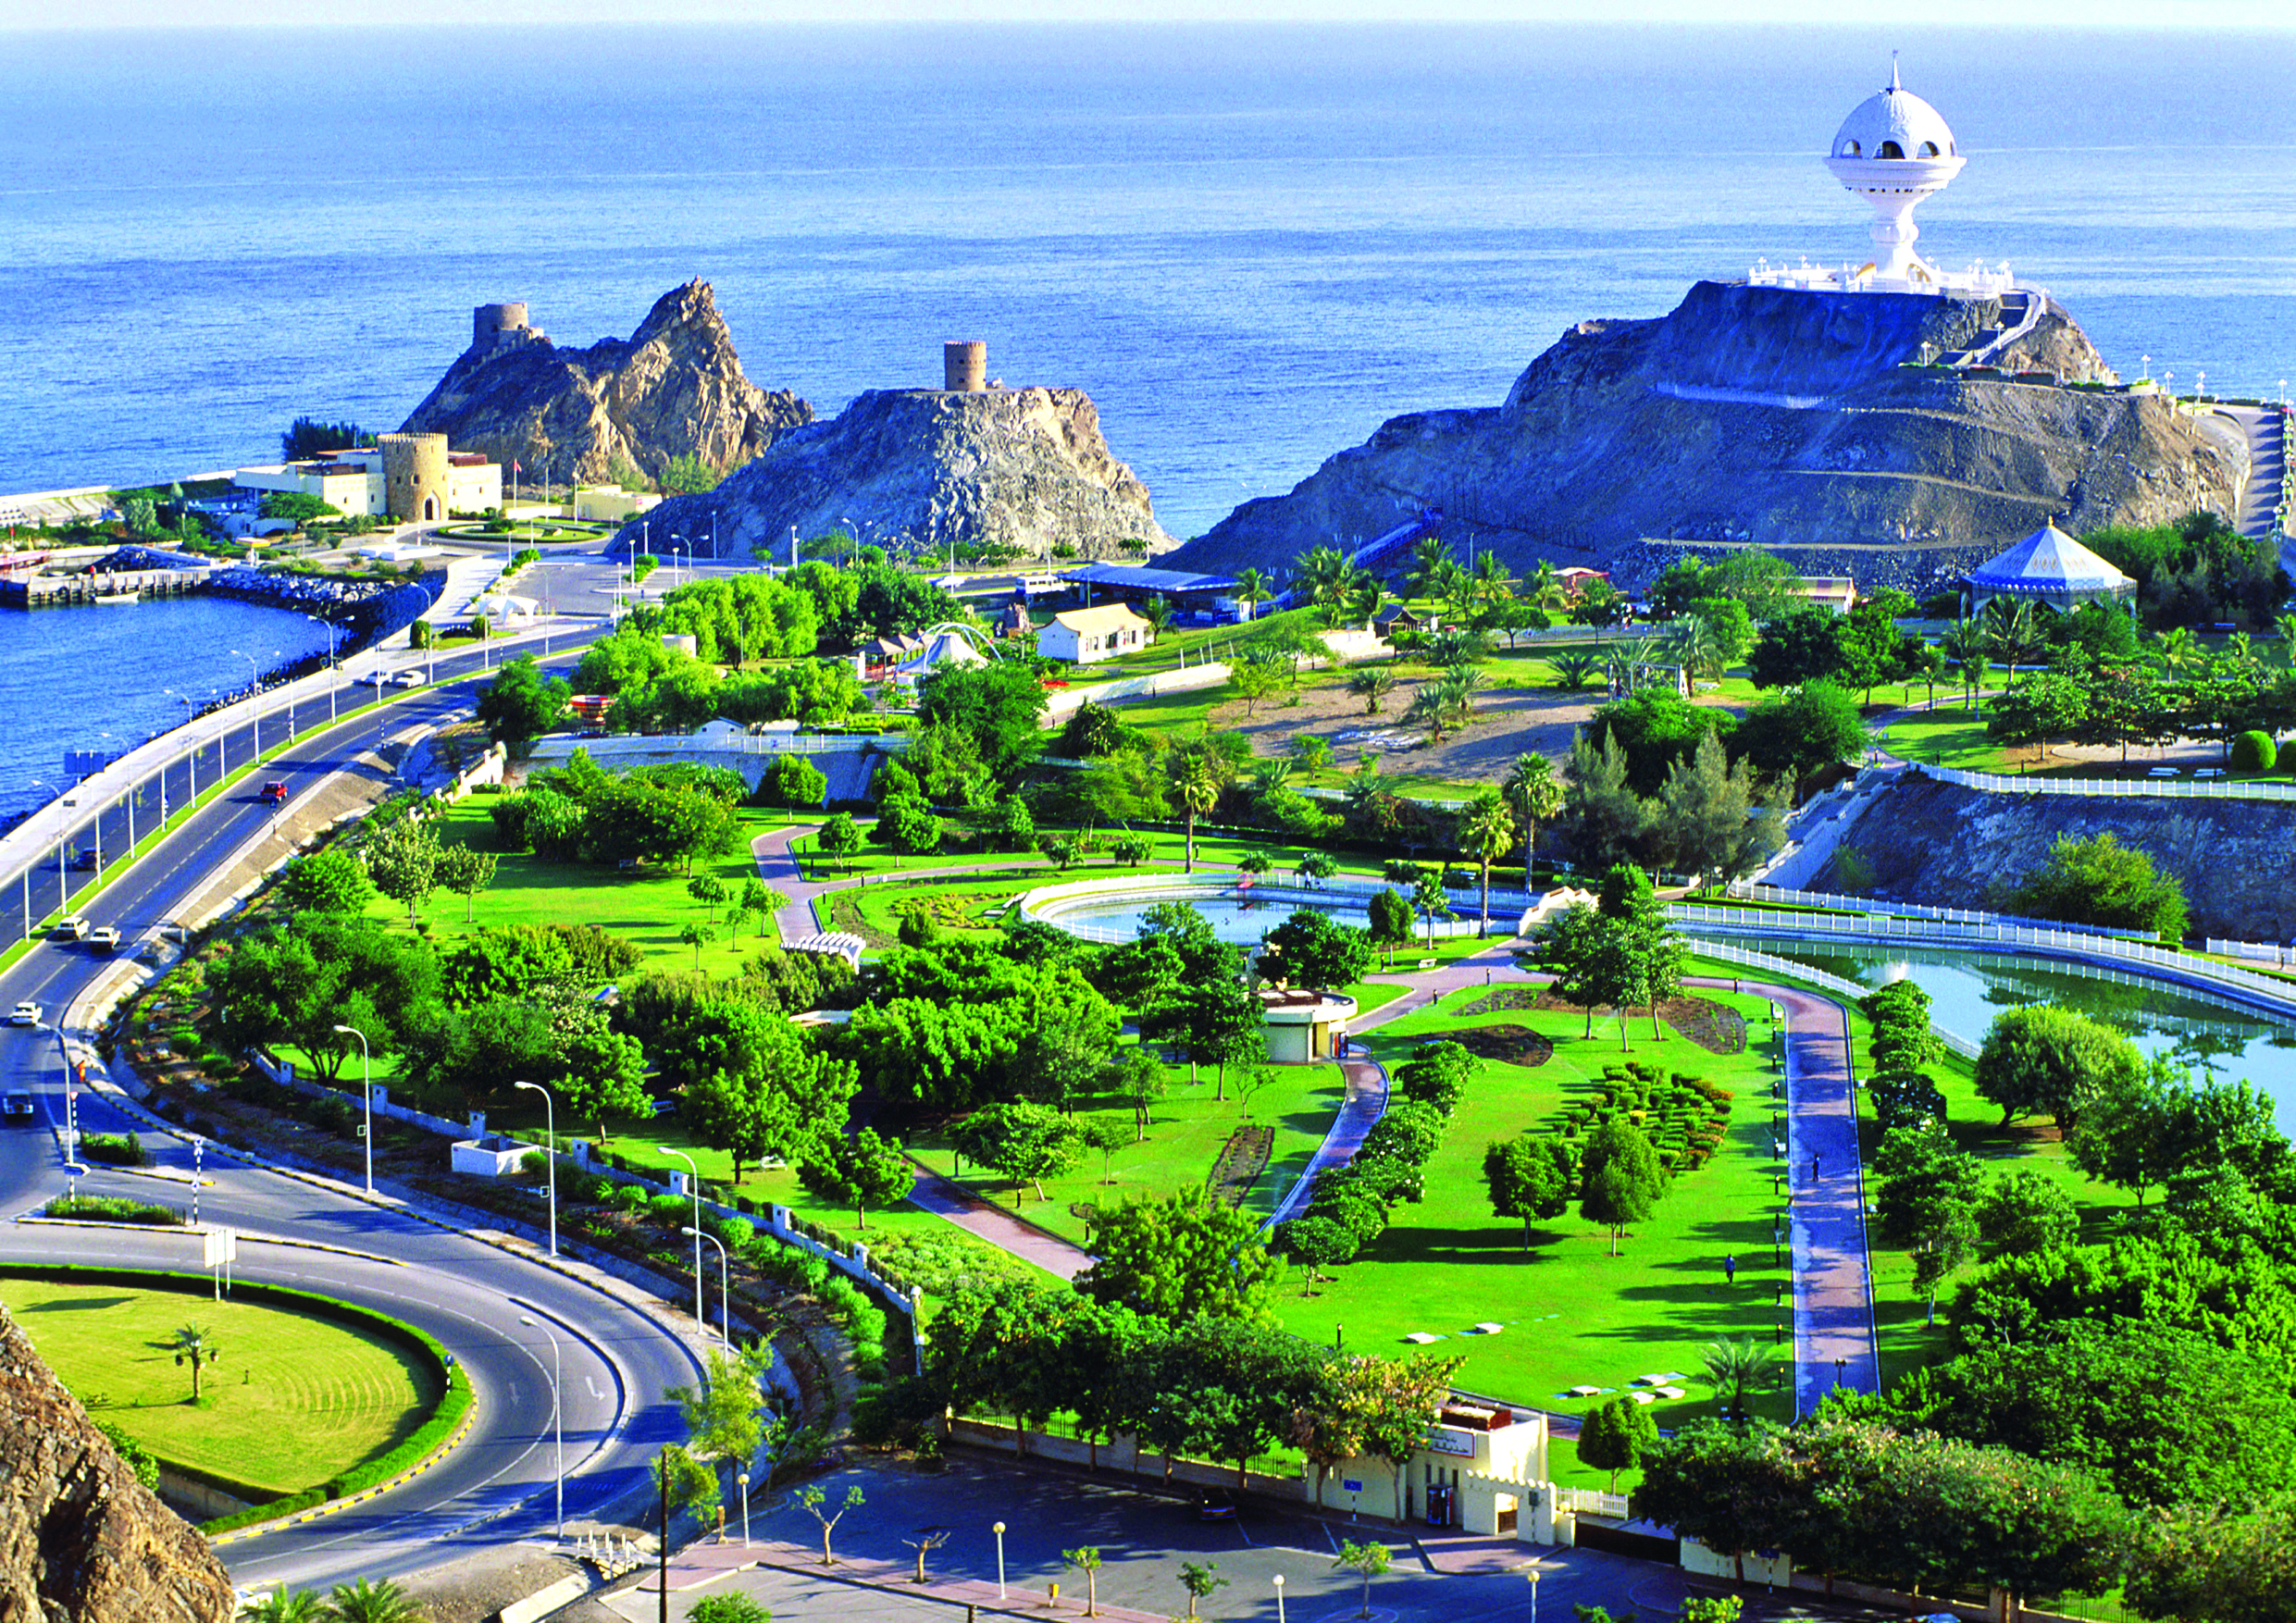 Muscat, the capital city of Oman